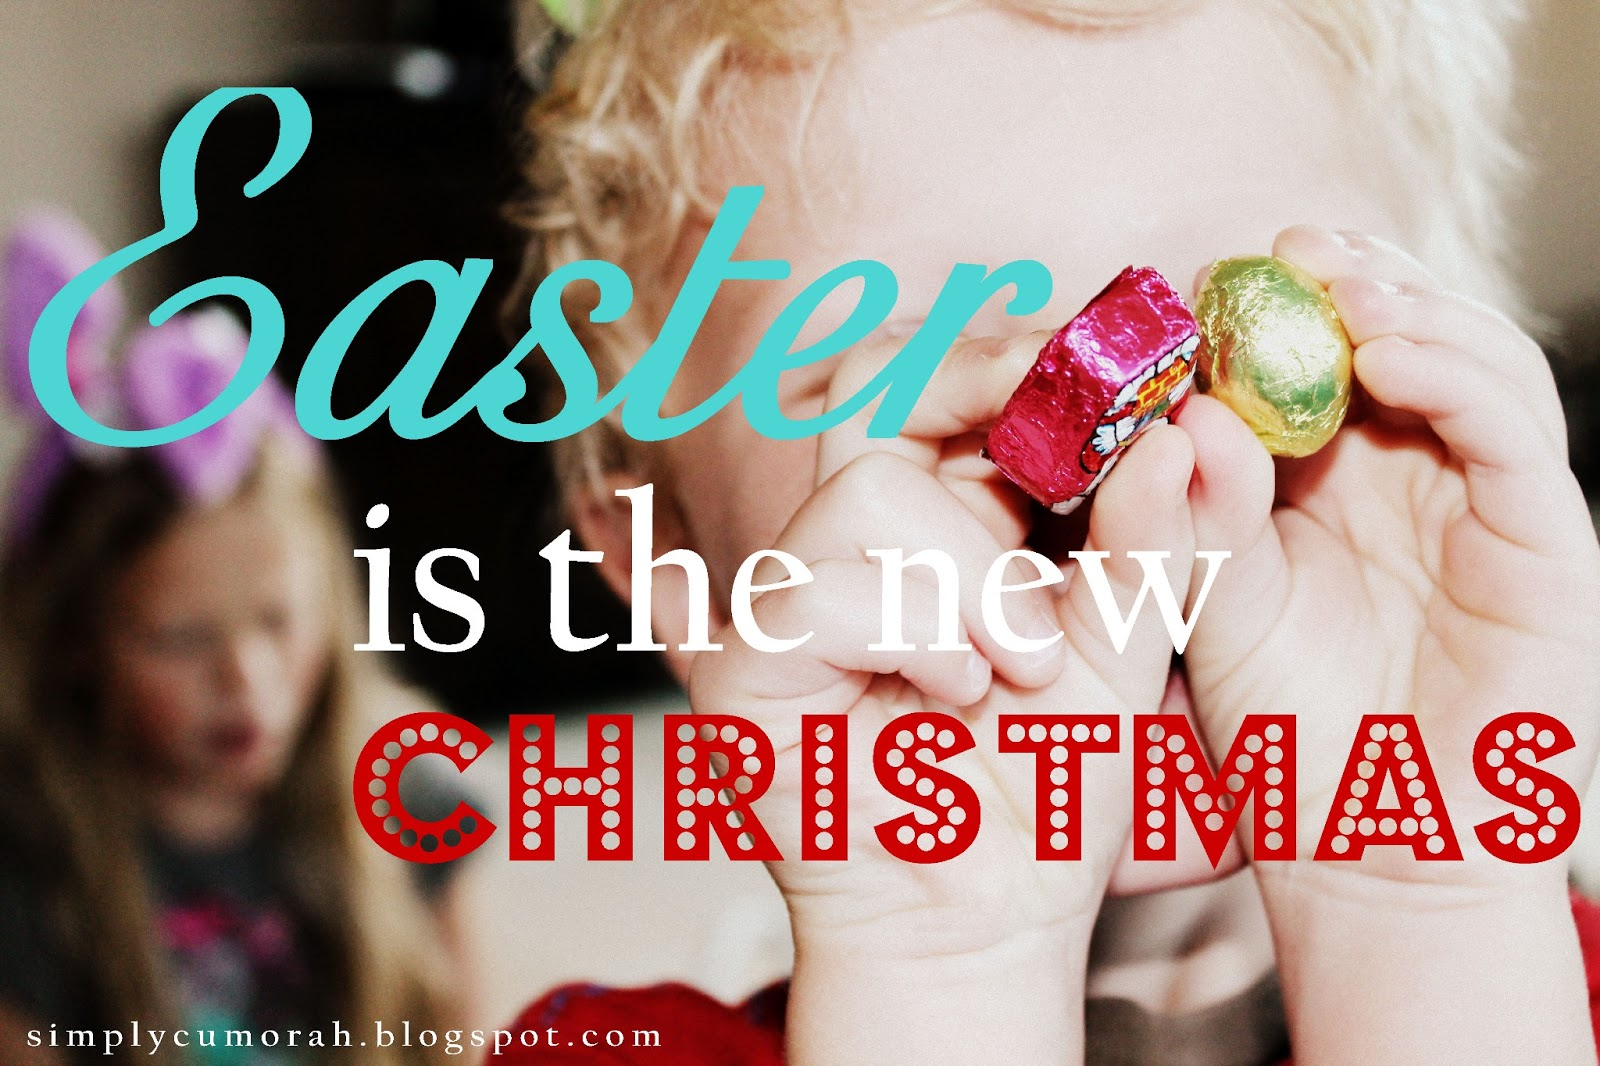 SimplyCumorah: Easter is the new Christmas